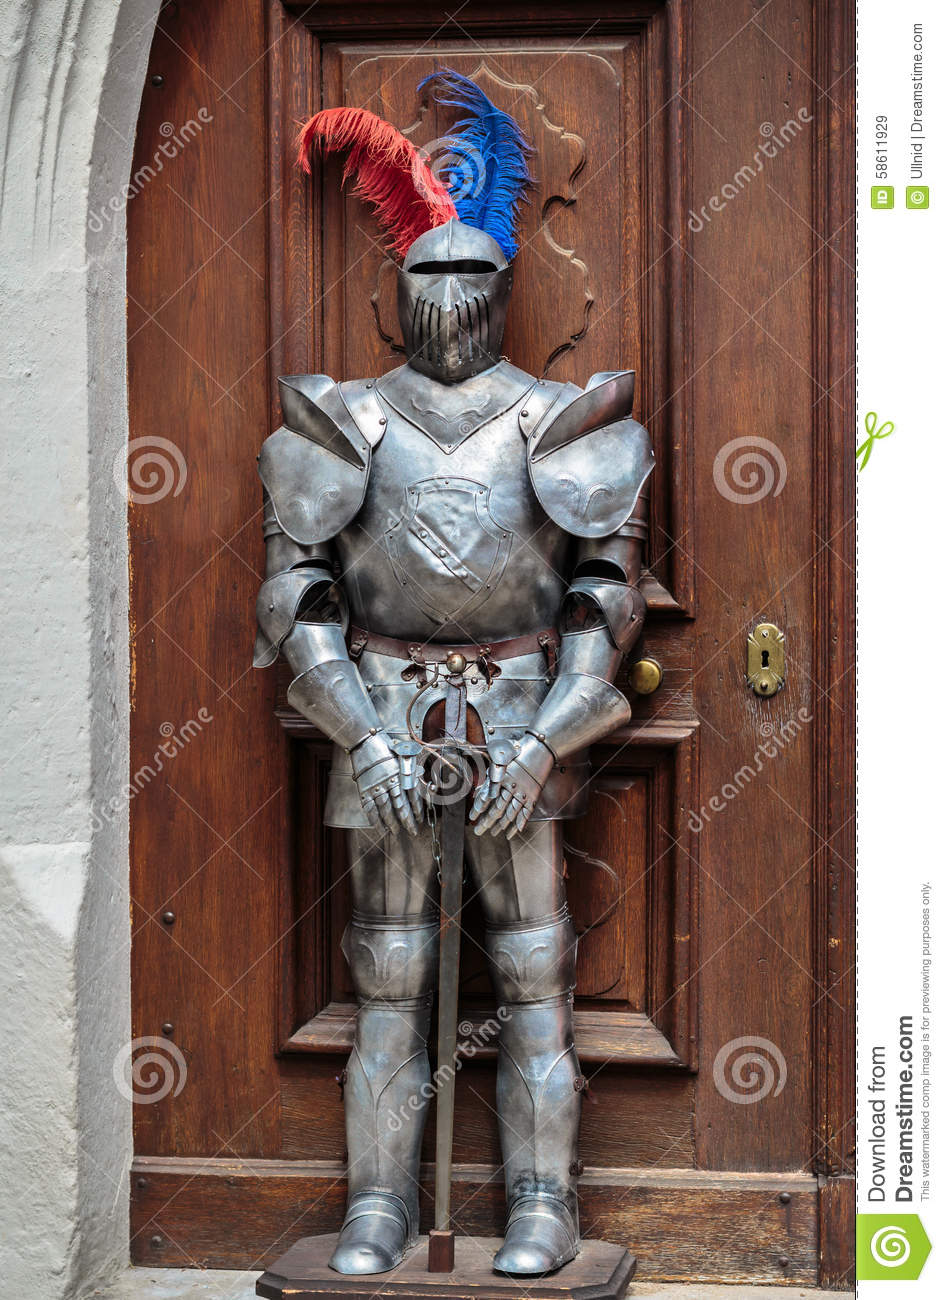 a knight standing guard editorial stock image image of entrance